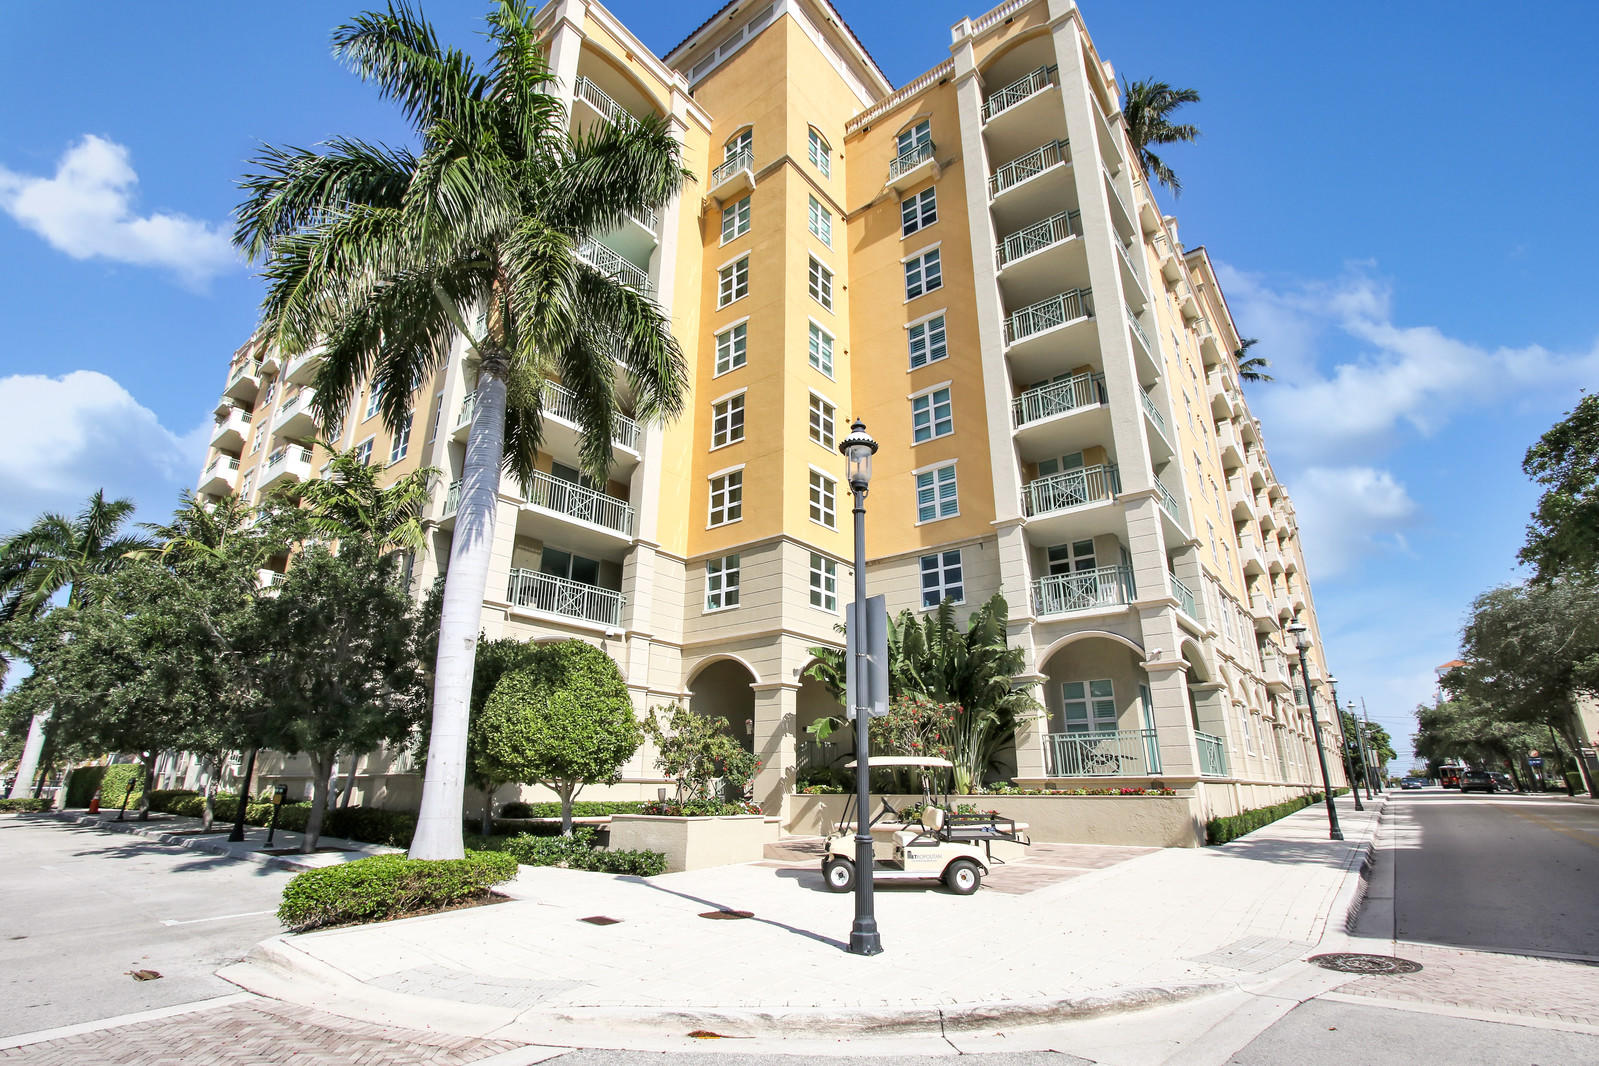 403 Sapodilla Avenue,West Palm Beach,Florida 33401,2 Bedrooms Bedrooms,2 BathroomsBathrooms,Condo/coop,Sapodilla,RX-10625083